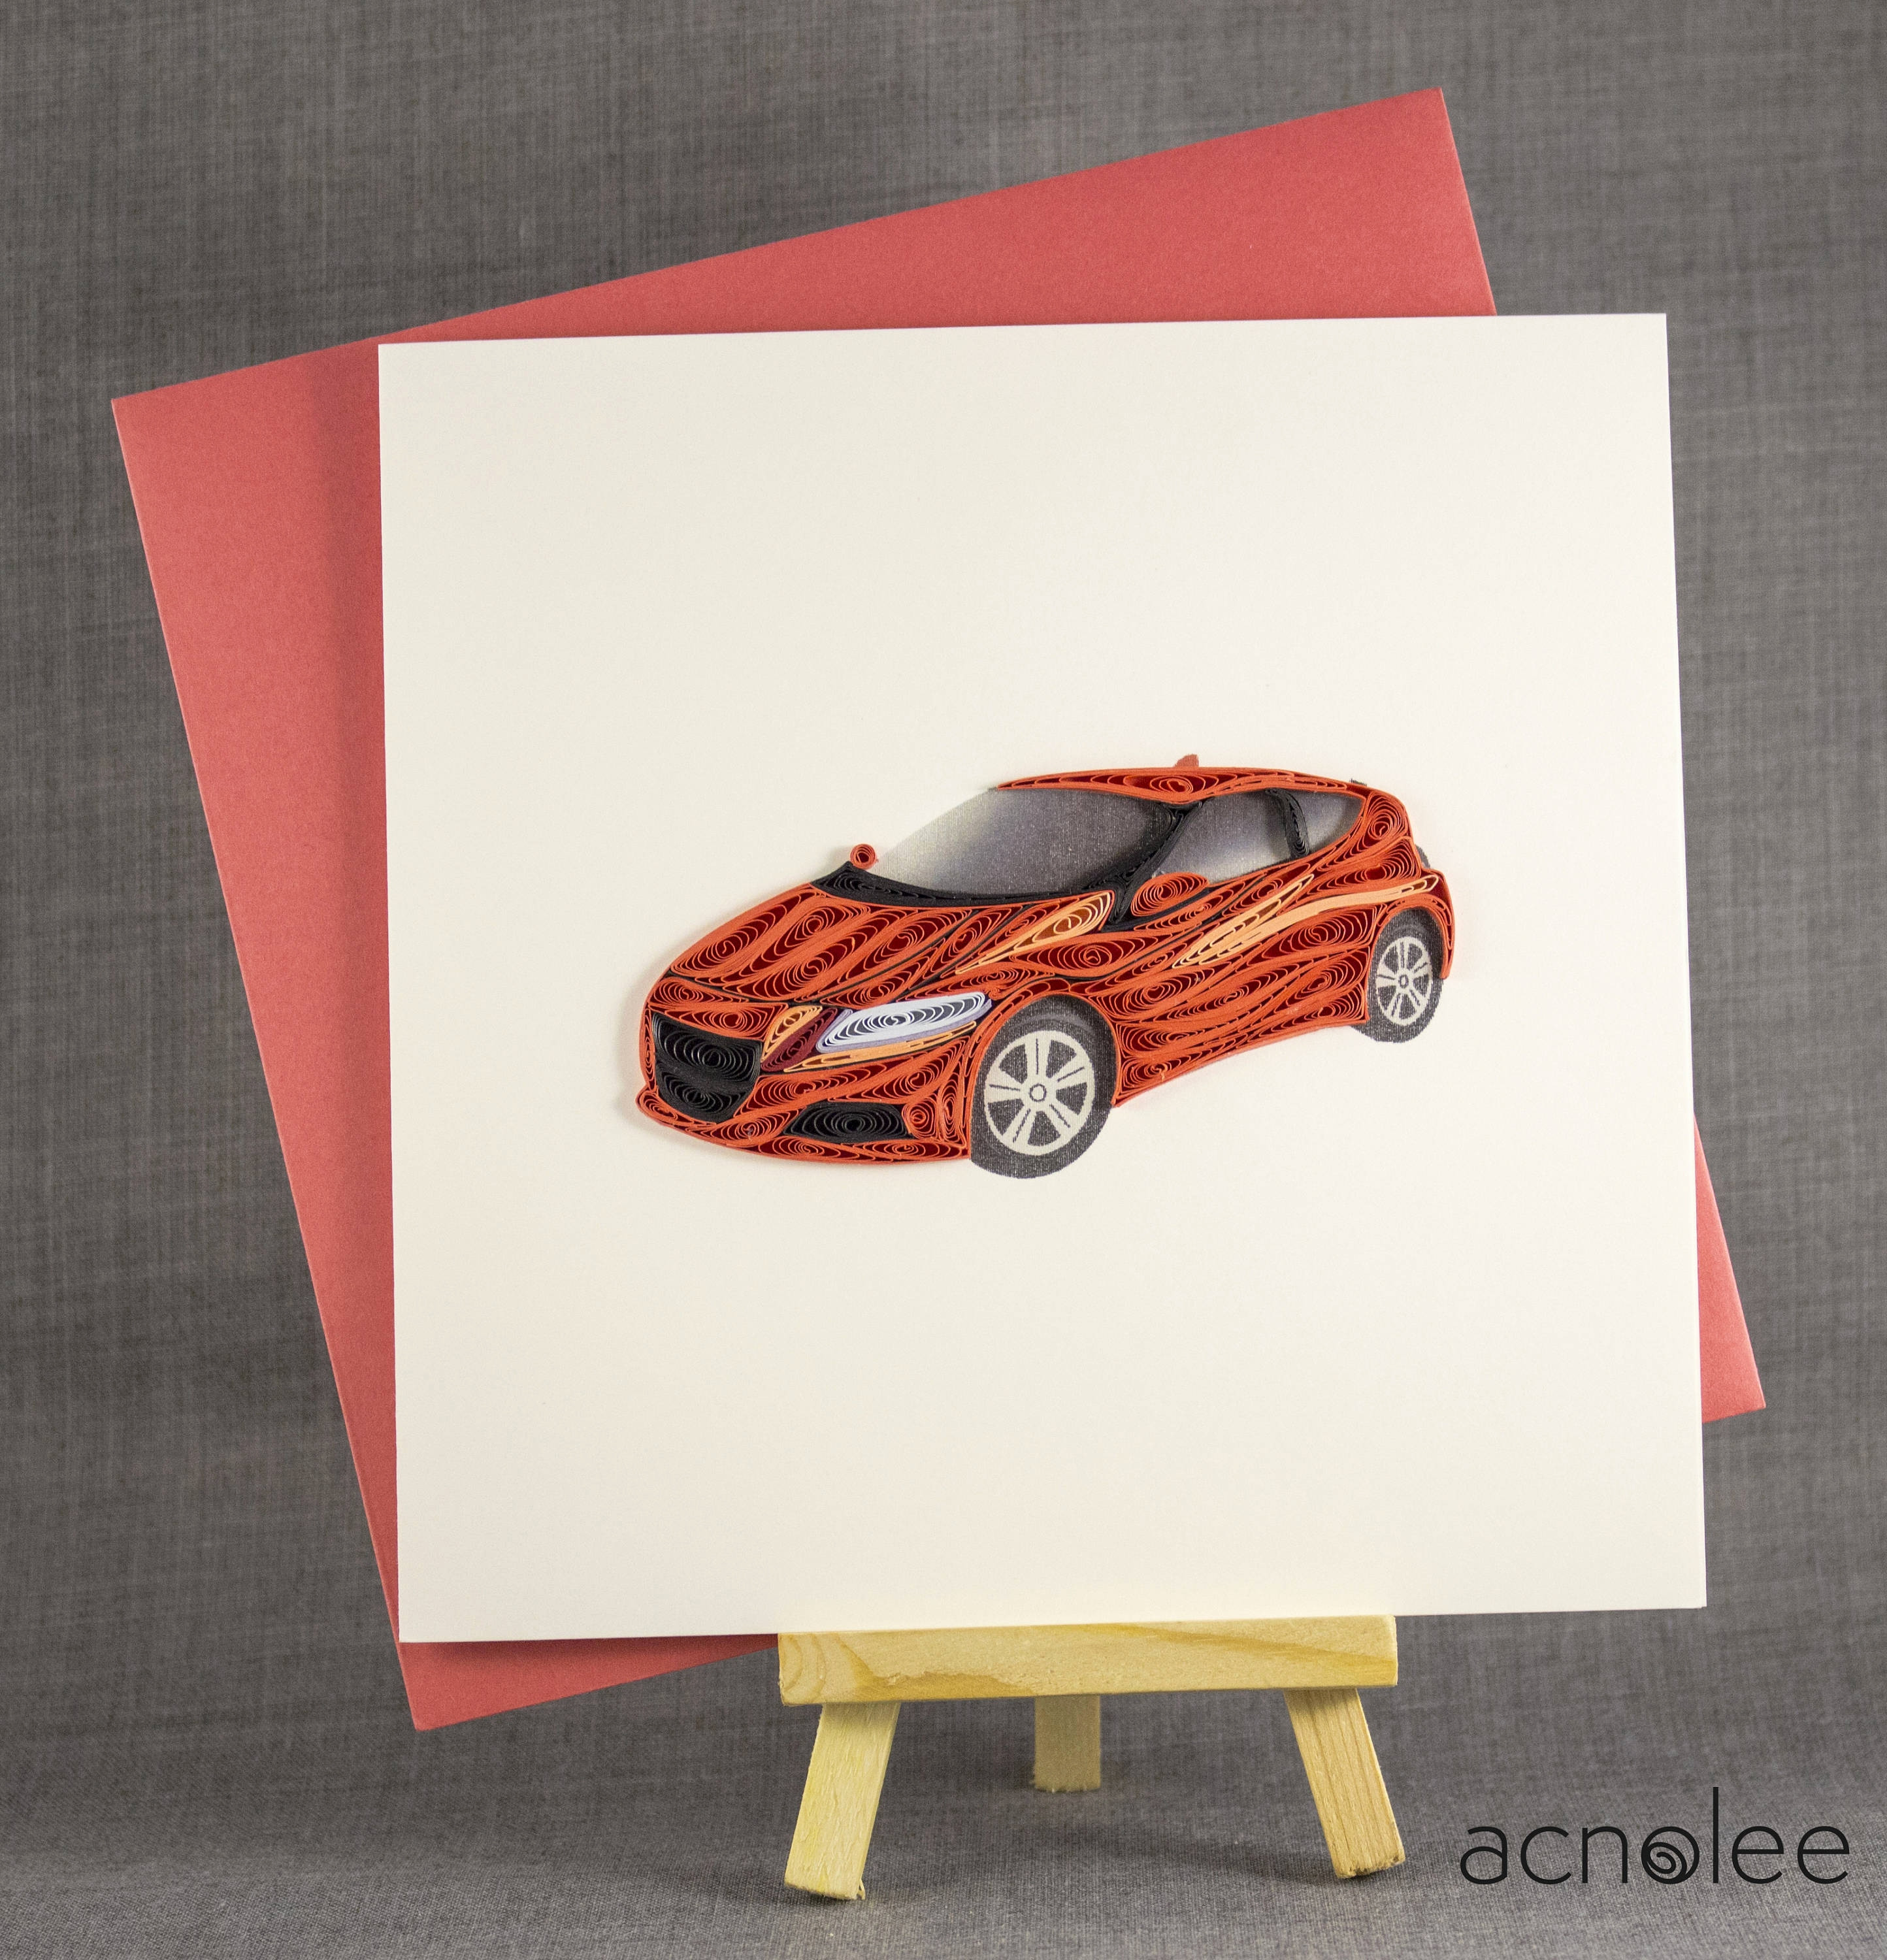 quilling birthday card ideas ; quilling-birthday-cards-ideas-inspirational-car-birthday-card-beautiful-3d-handmade-card-quilling-card-quilled-of-quilling-birthday-cards-ideas